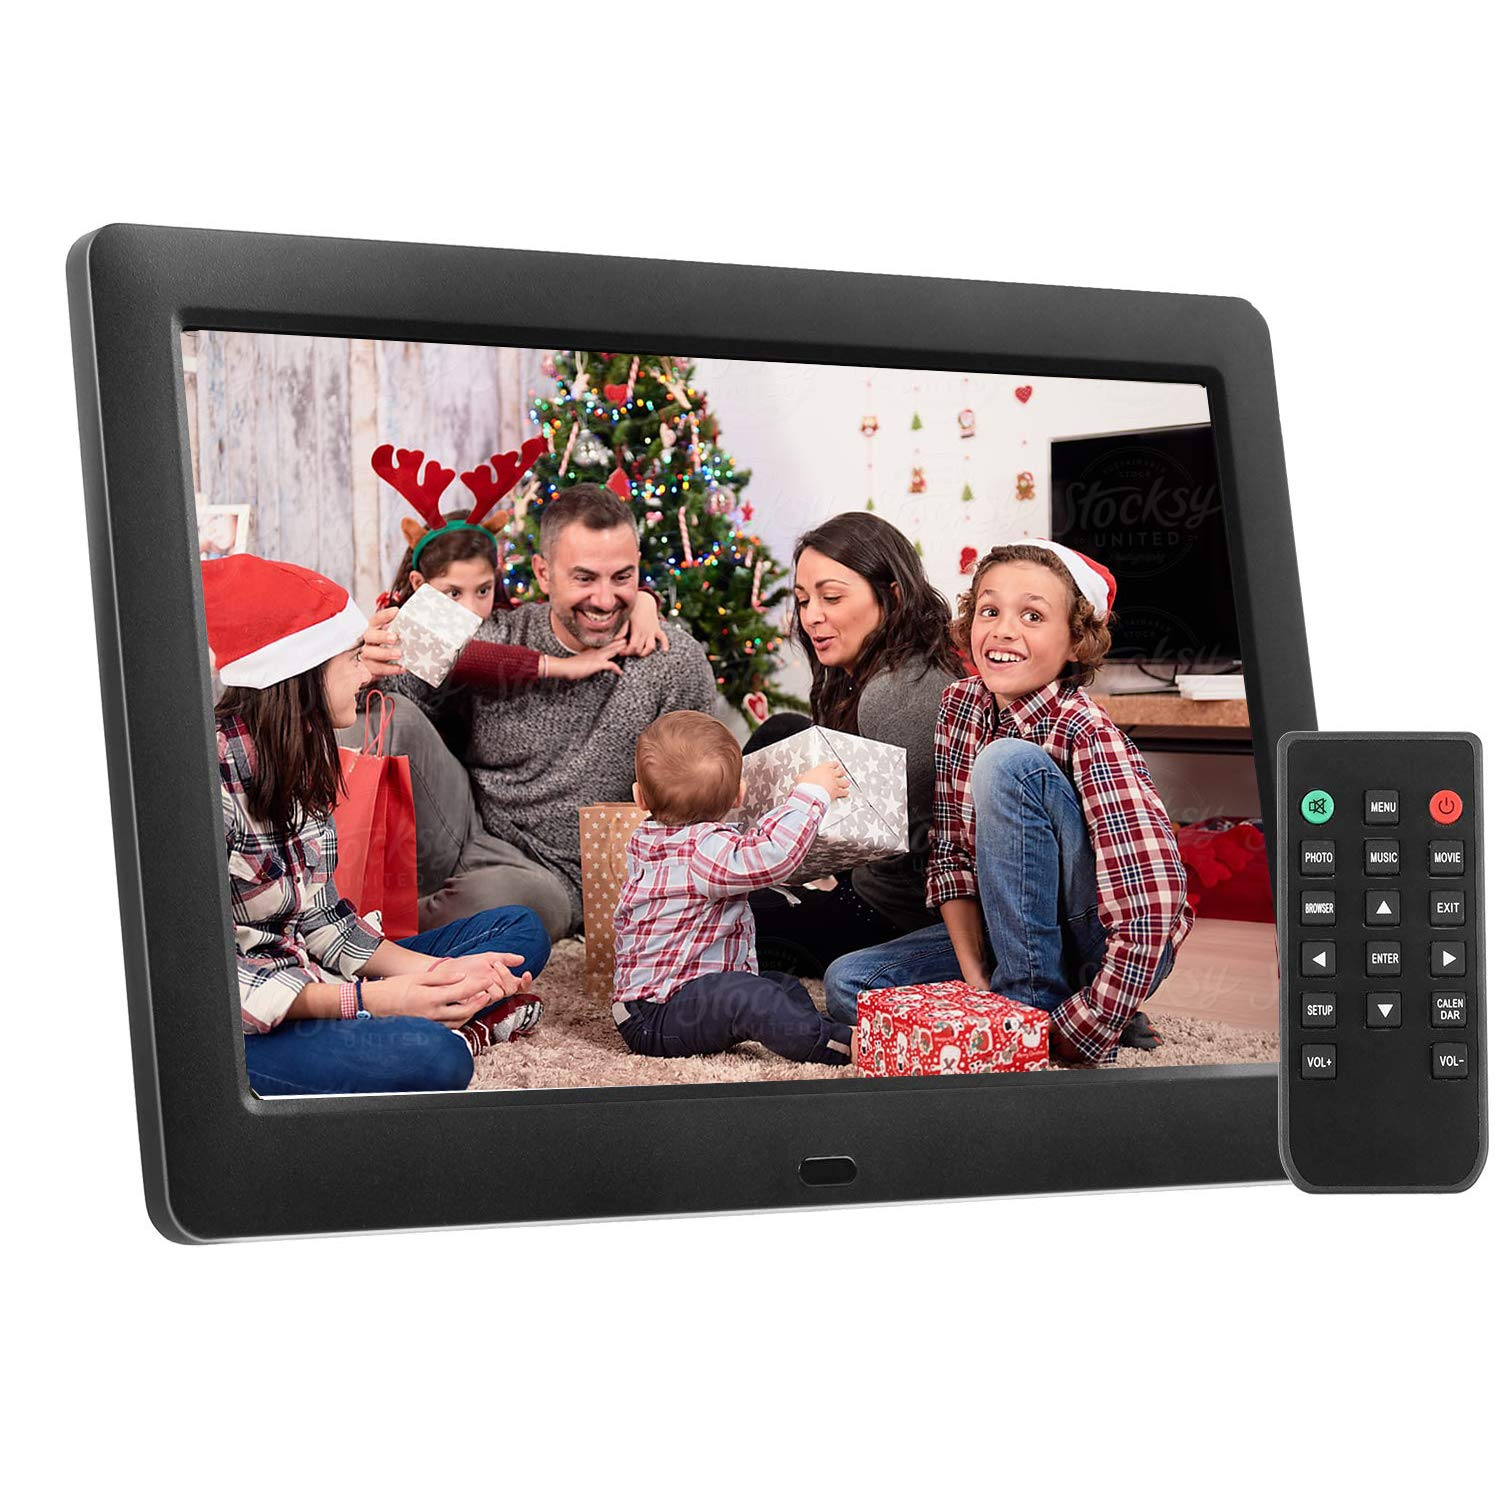 8 Inch Digital Picture Frame, AiJoy Electronic Photo Frame & 1280 x 720 High Resolution IPS Widescreen Display - Multifunction Auto-Rotate/Calendar/Clock, Music/Photo/Video Player with Remote Control